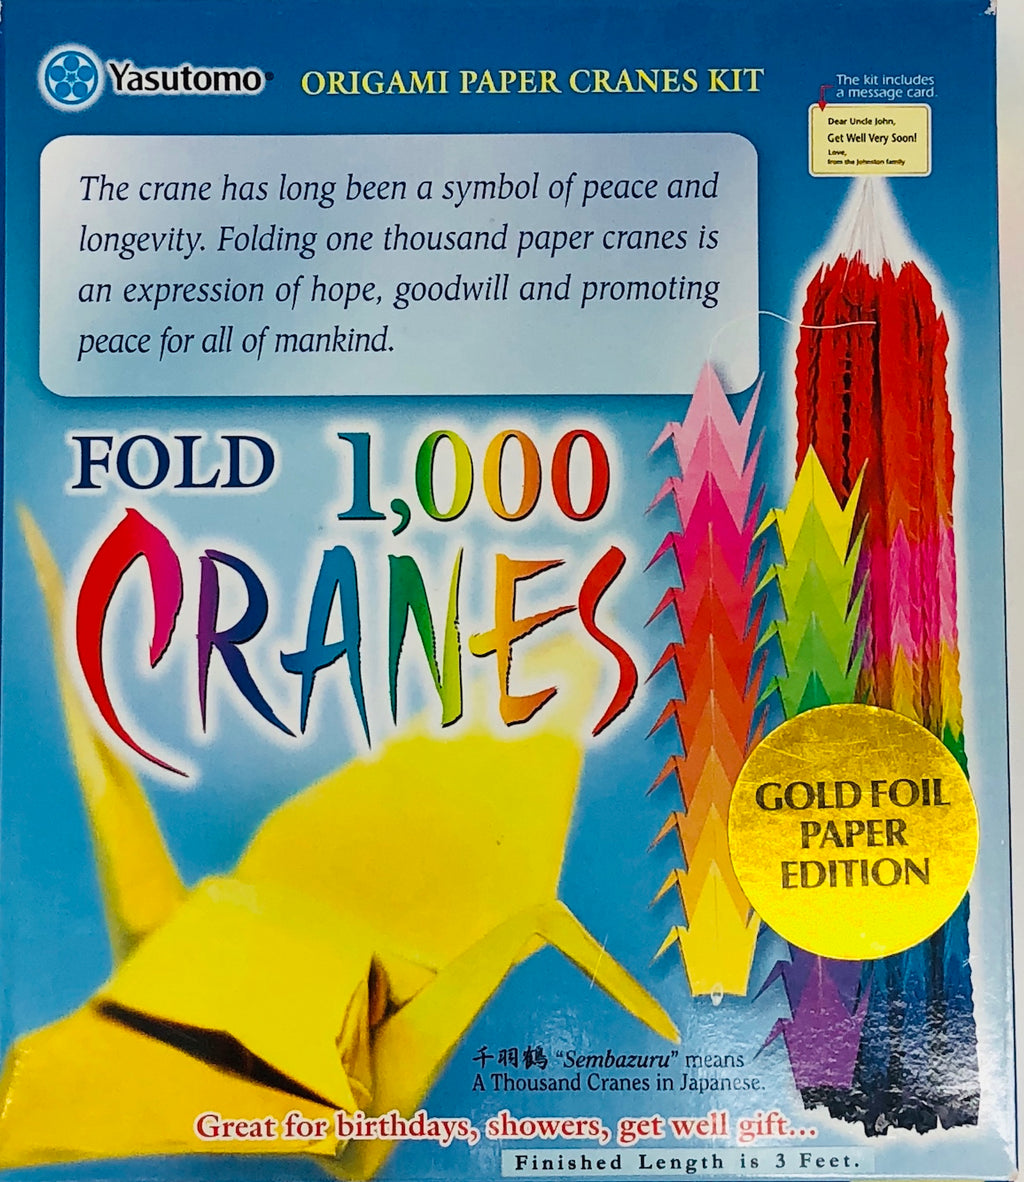 1000 Crane Gold Foil Edition Kit